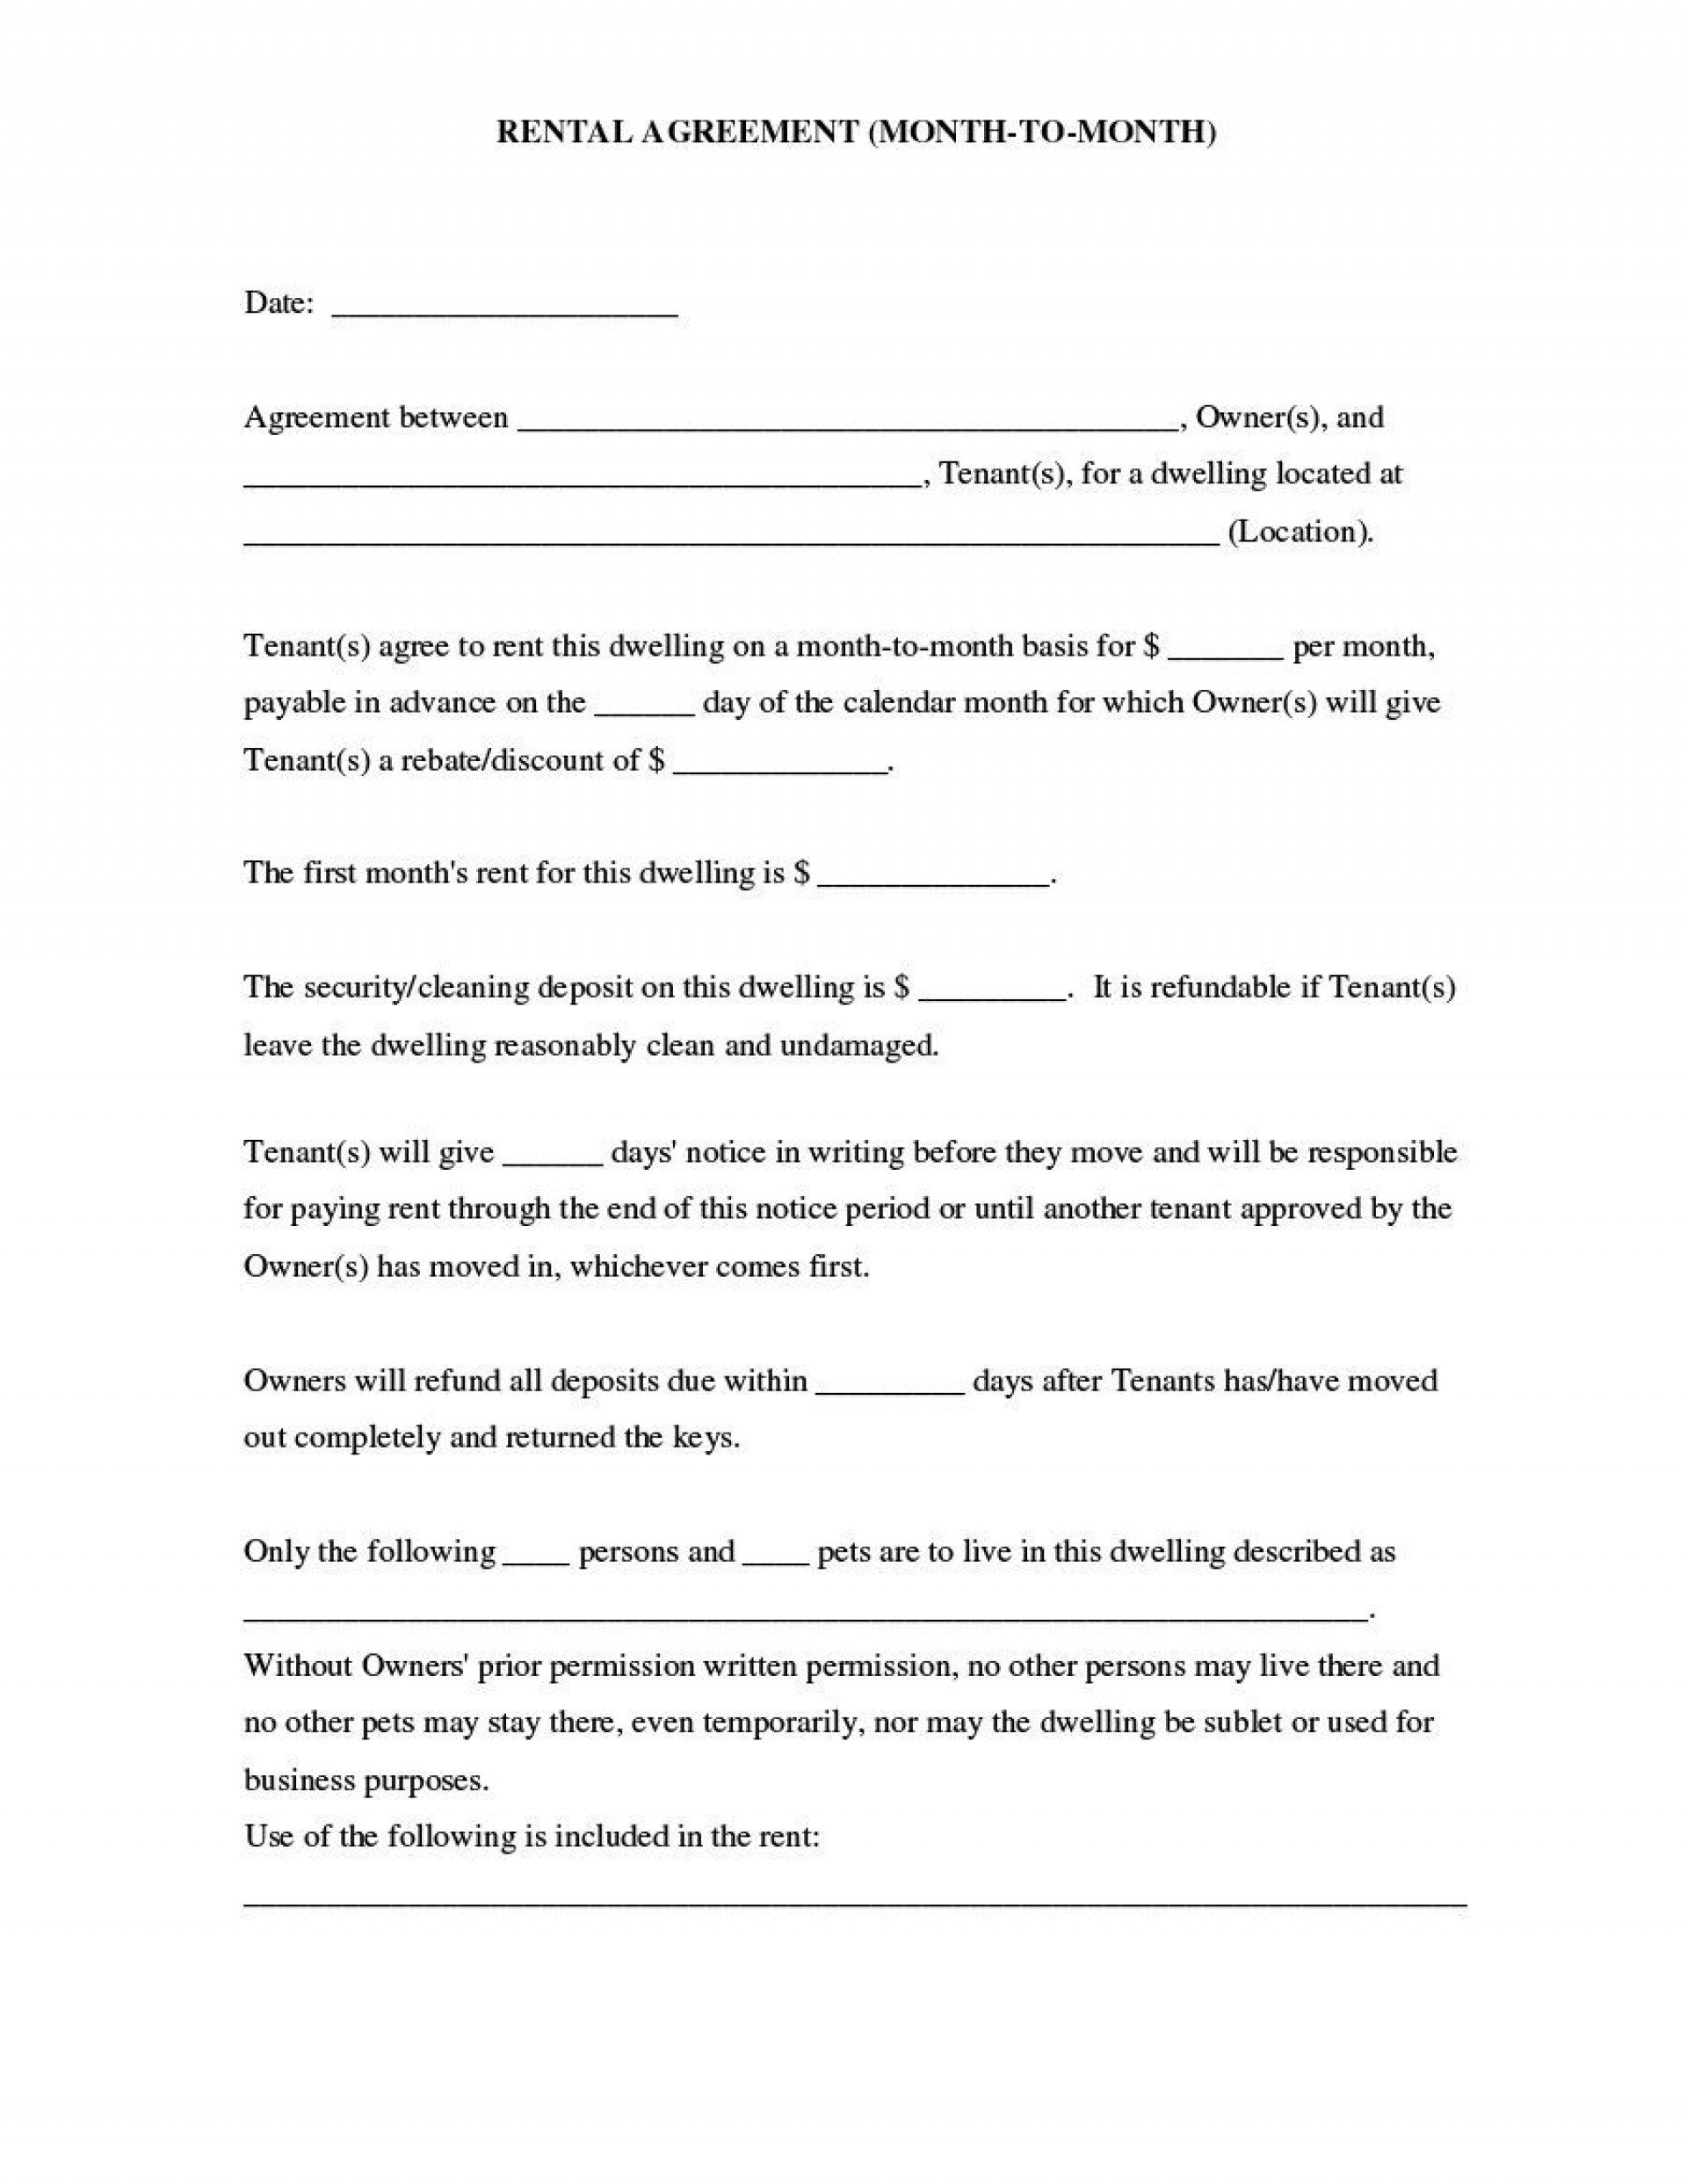 007 Outstanding Housing Rental Agreement Template Free High Resolution 1920